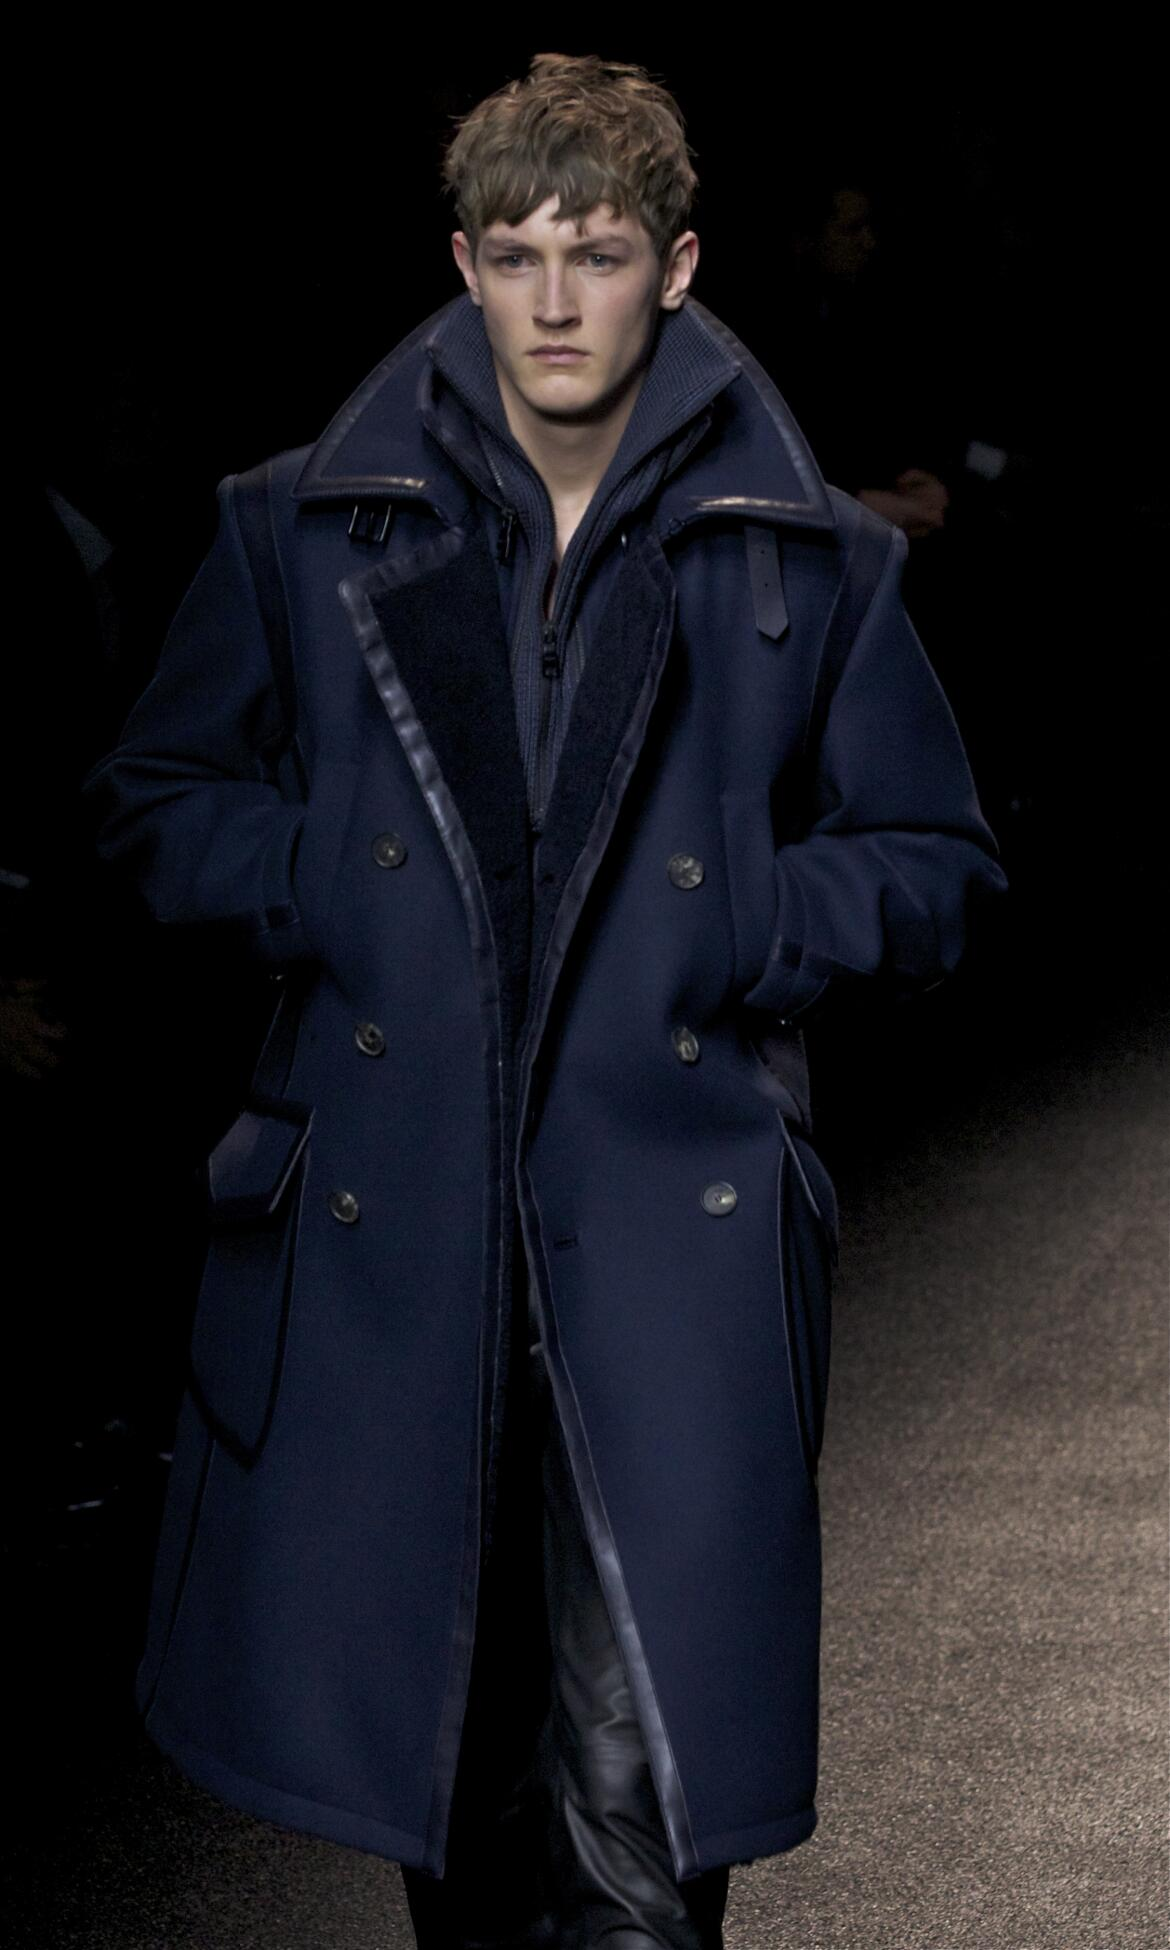 Catwalk Salvatore Ferragamo Fashion Show Winter 2013 2014 Menswear